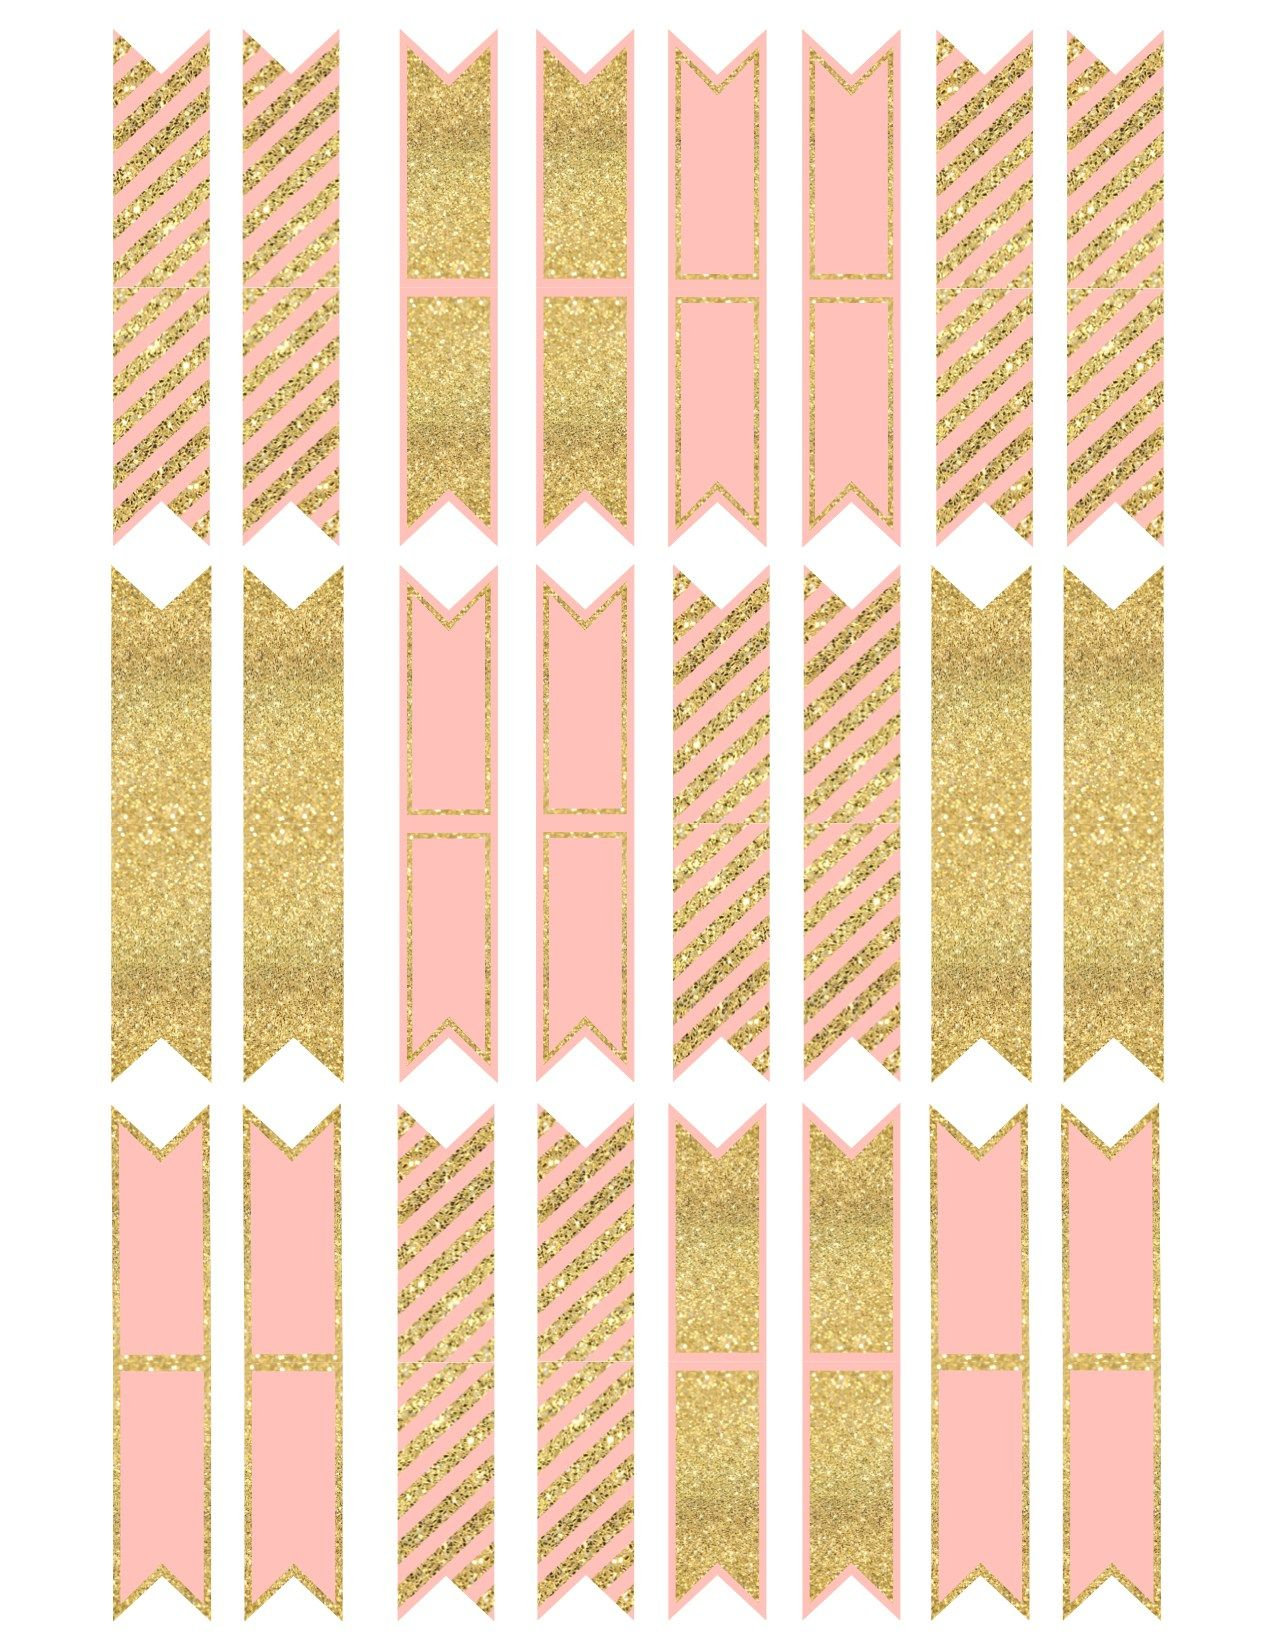 Pink And Gold Cupcake Topper Flags Or Bunting | Diy | Pinterest - Baby Shower Bunting Free Printable